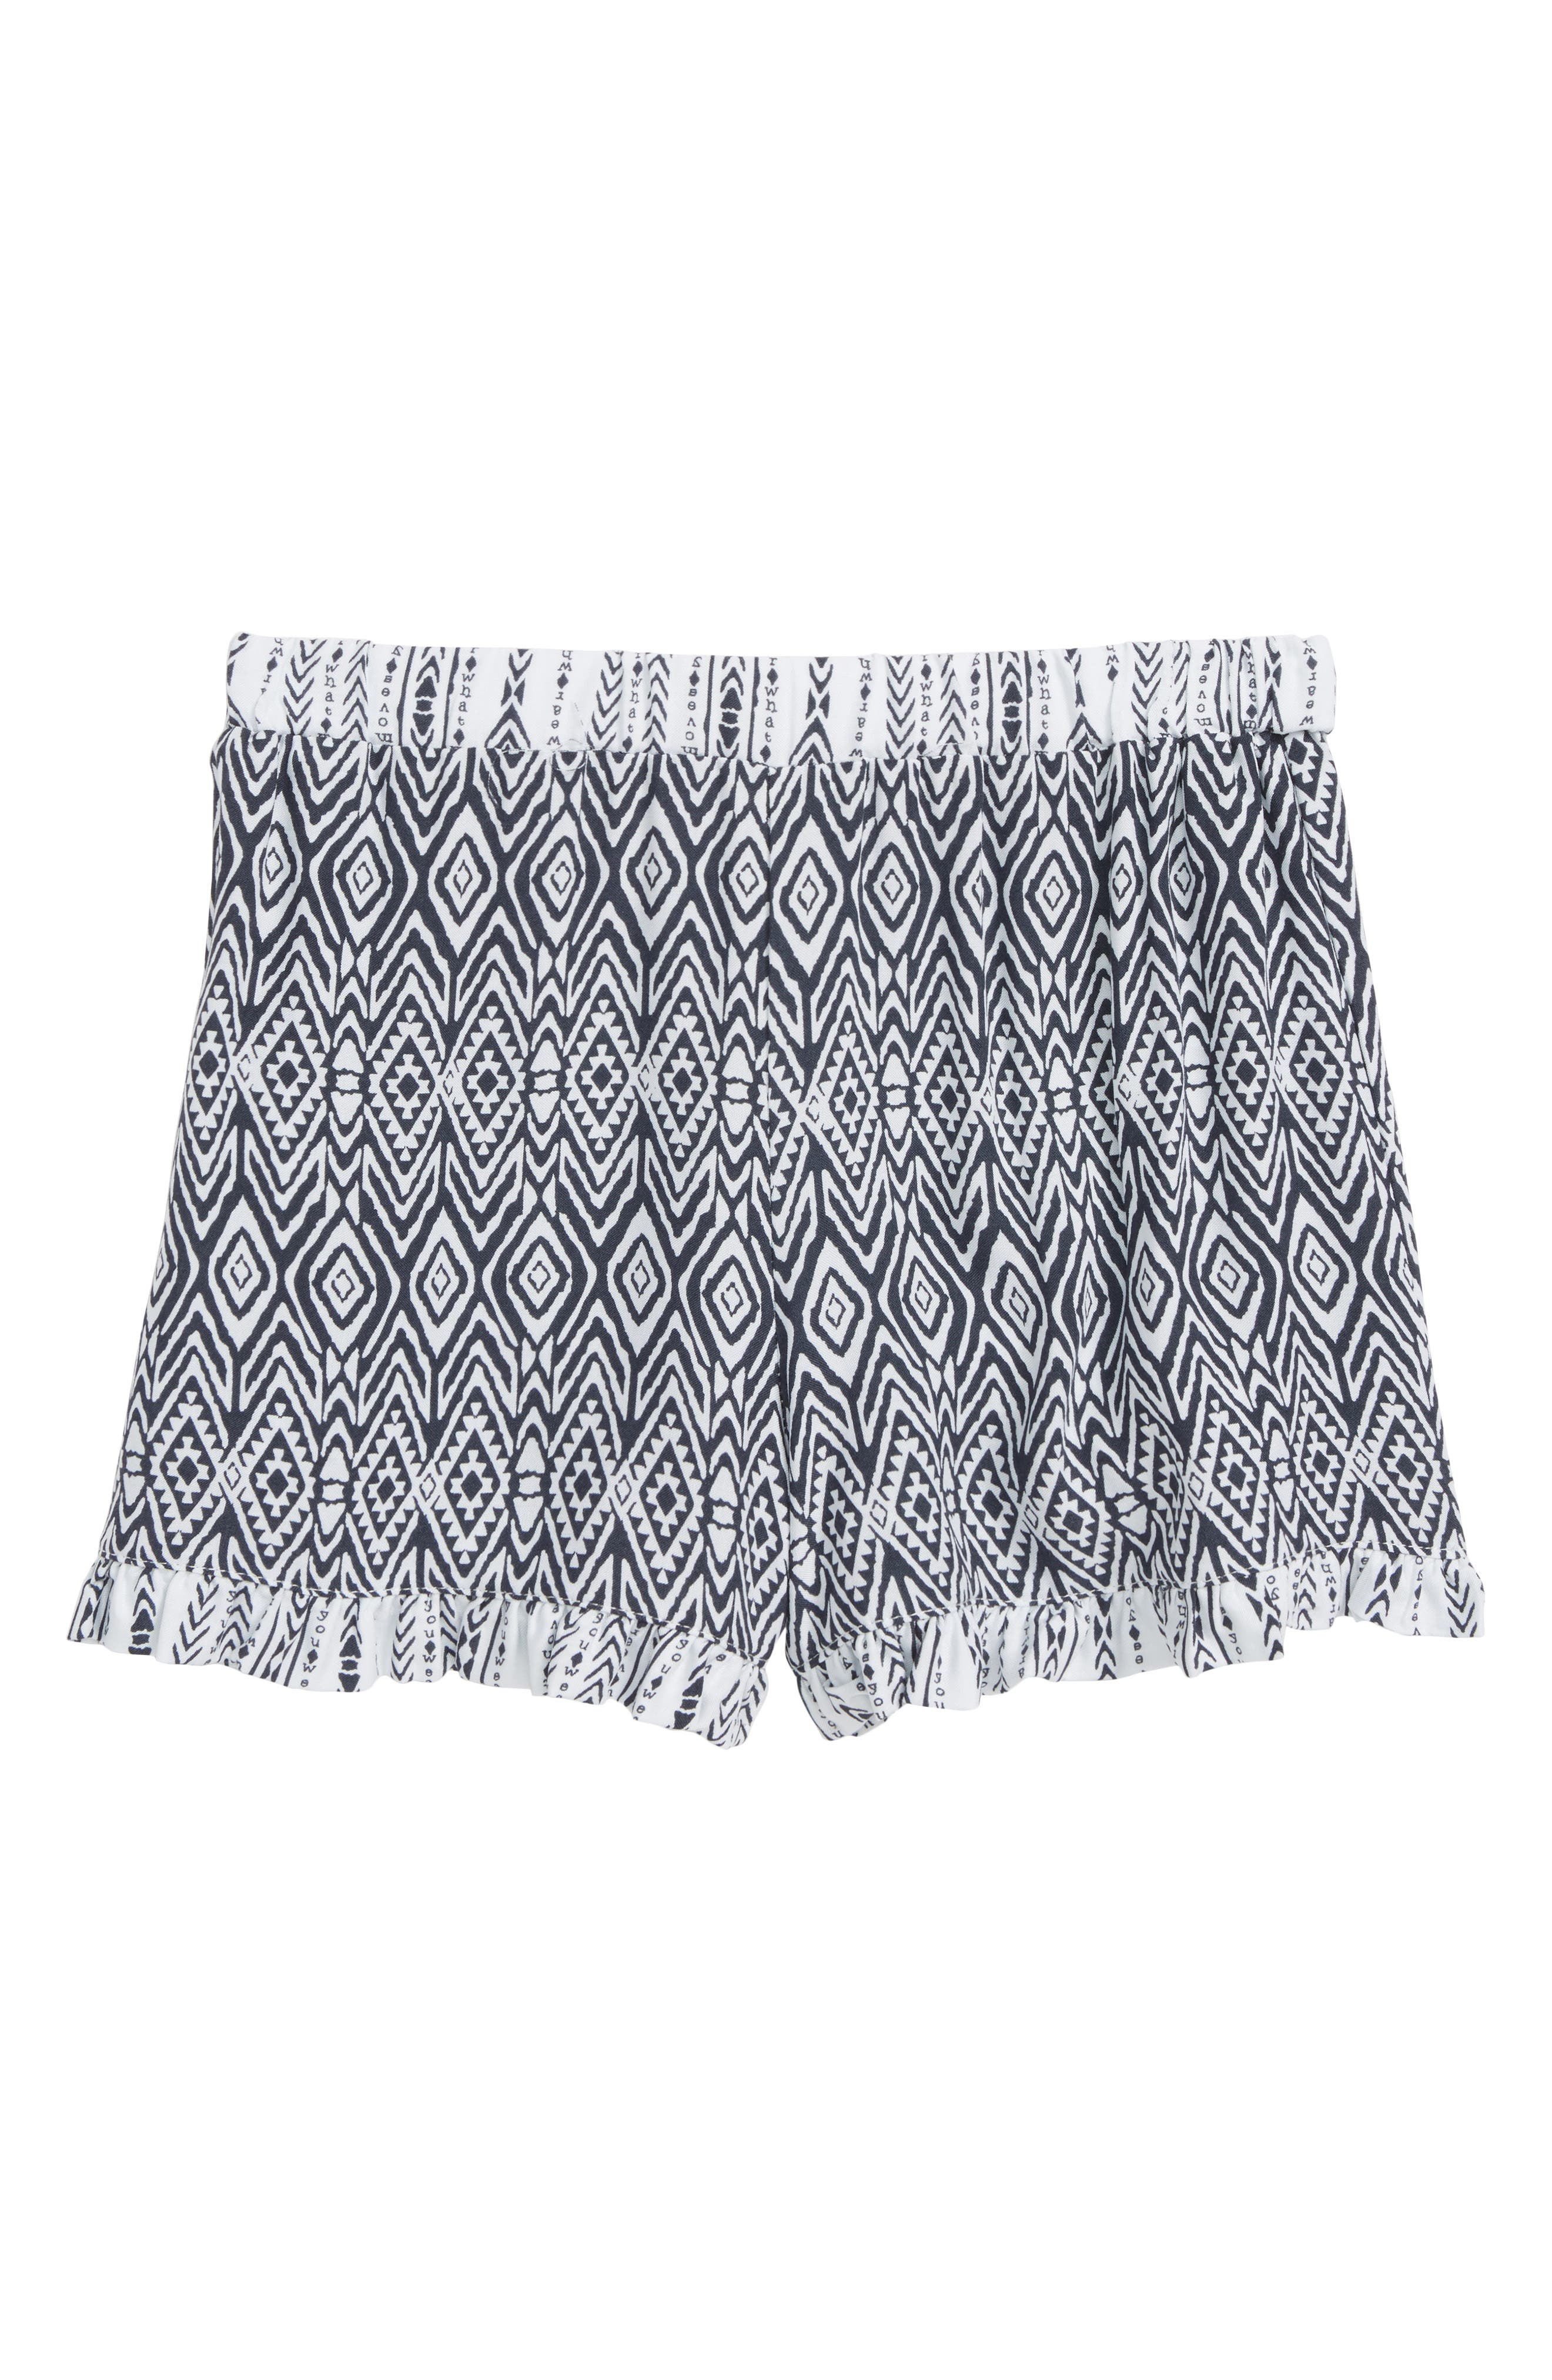 Tribal Print Shorts,                         Main,                         color, Navy/ White